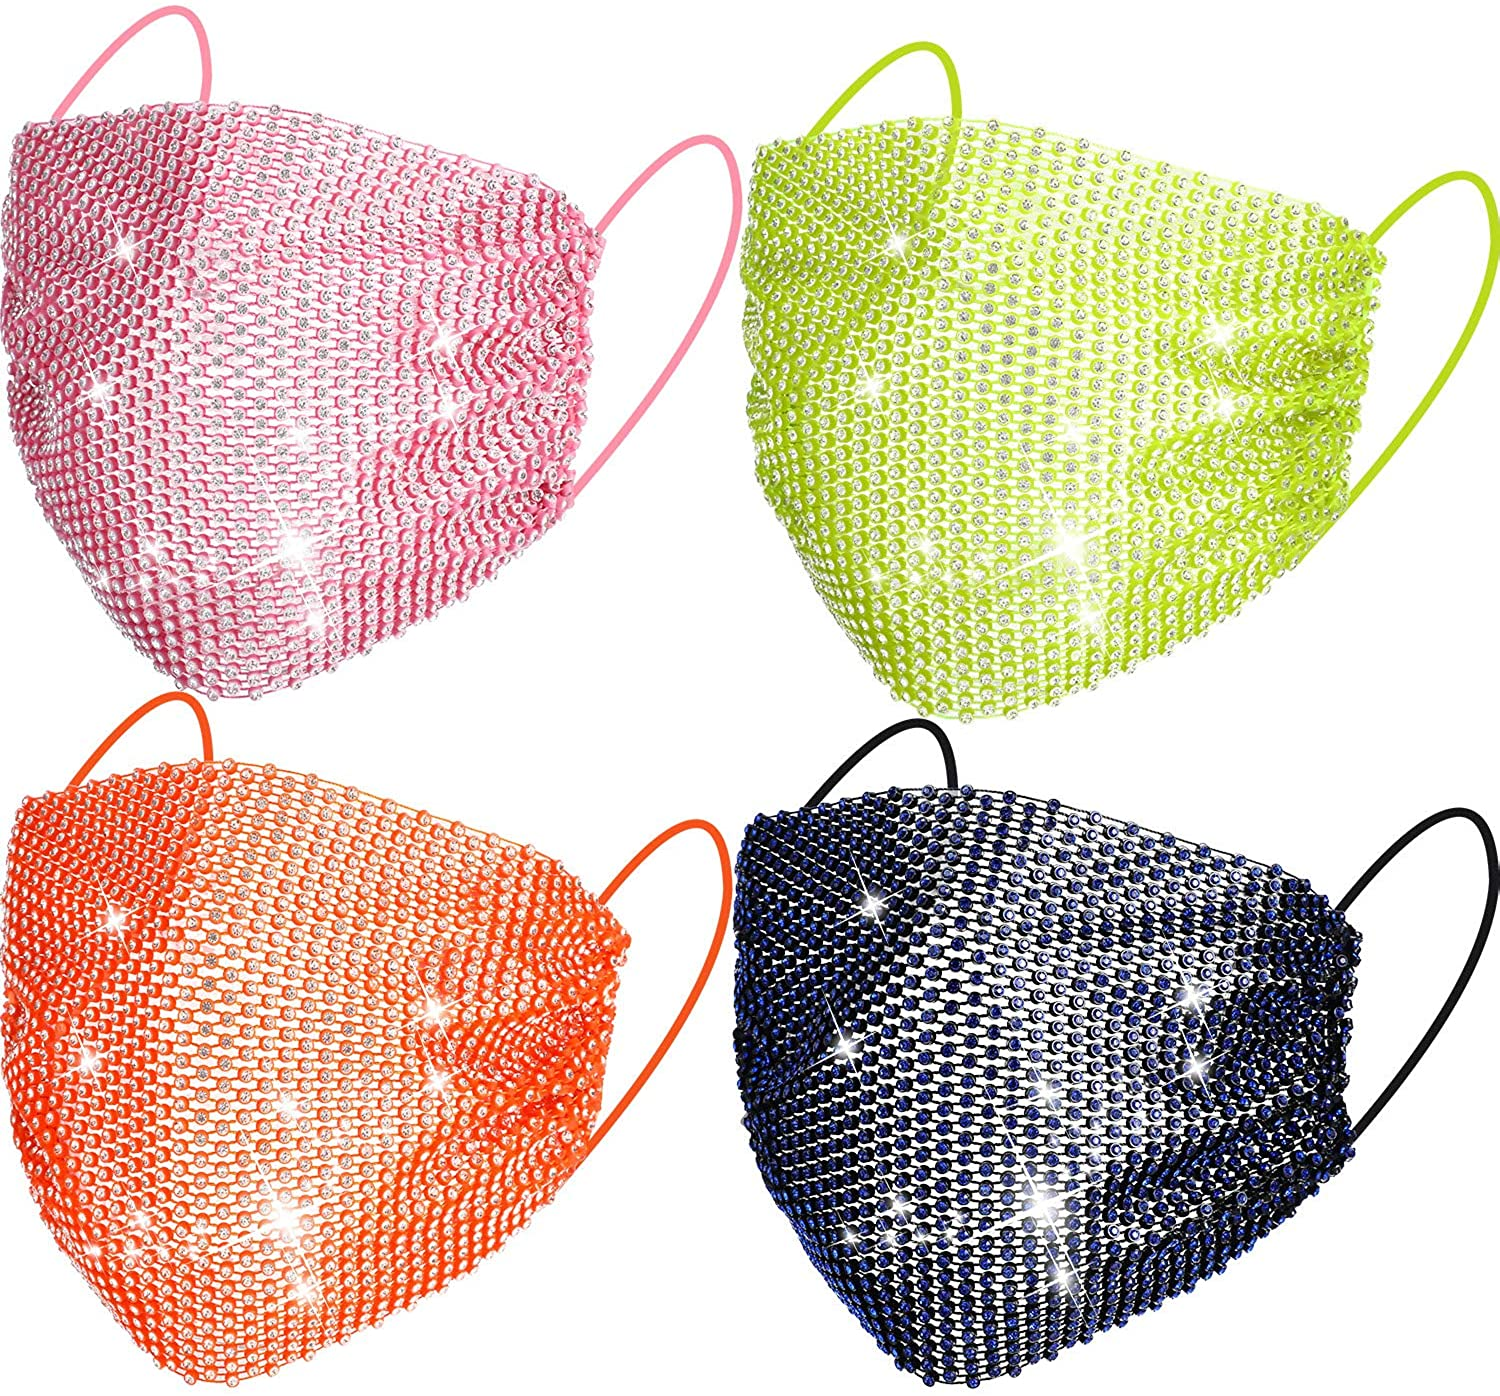 4 Pieces Rhinestone Mesh Face Cover Bling Crystal Masquerade Face Cover Halloween Venetian Mardi Gras Jewelry for Ball Party Nightclub (Blue, Pink, Orange, Green)